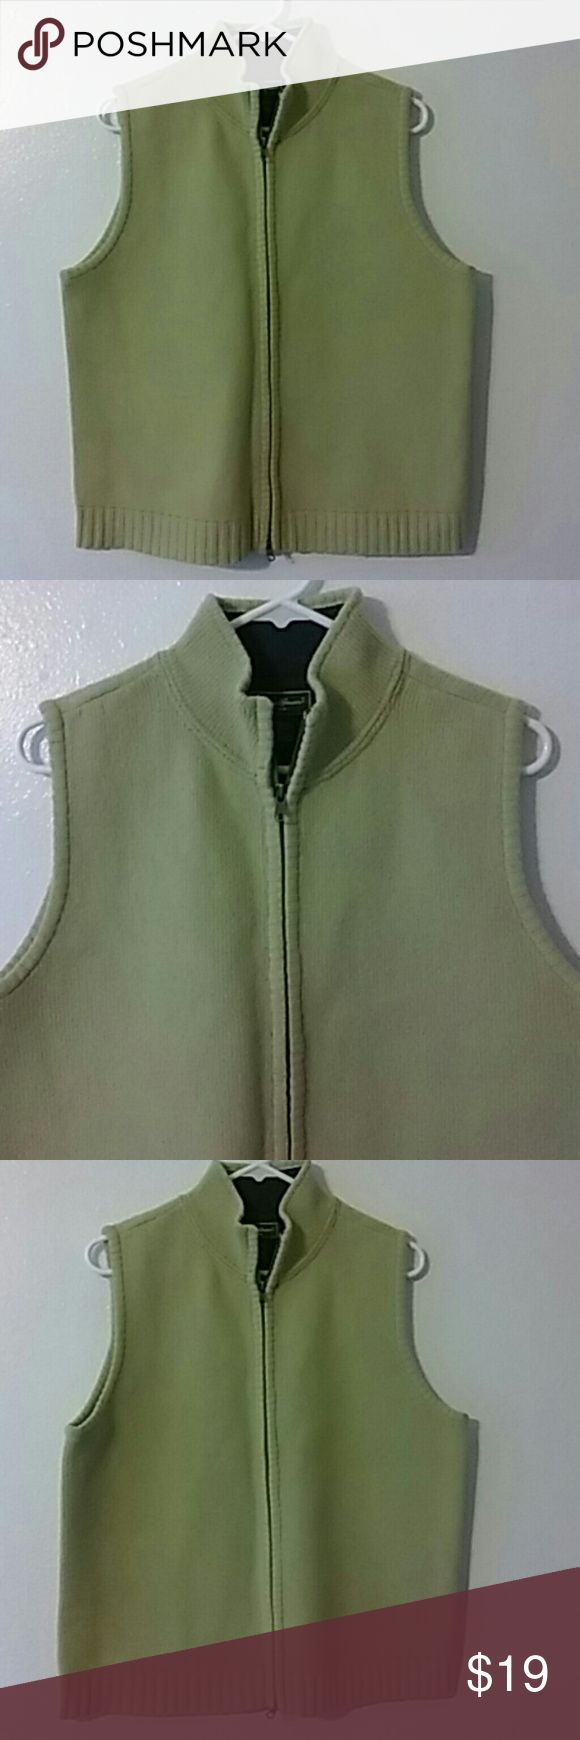 """Eddie Bauer knit sweater vest sz L pistachio green Comfortable vest wit front zip Shell is wool blend. Lining us cotton knit. Dry clean or hand wash Bust is 46"""", length 24"""" Eddie Bauer Sweaters Cowl & Turtlenecks"""